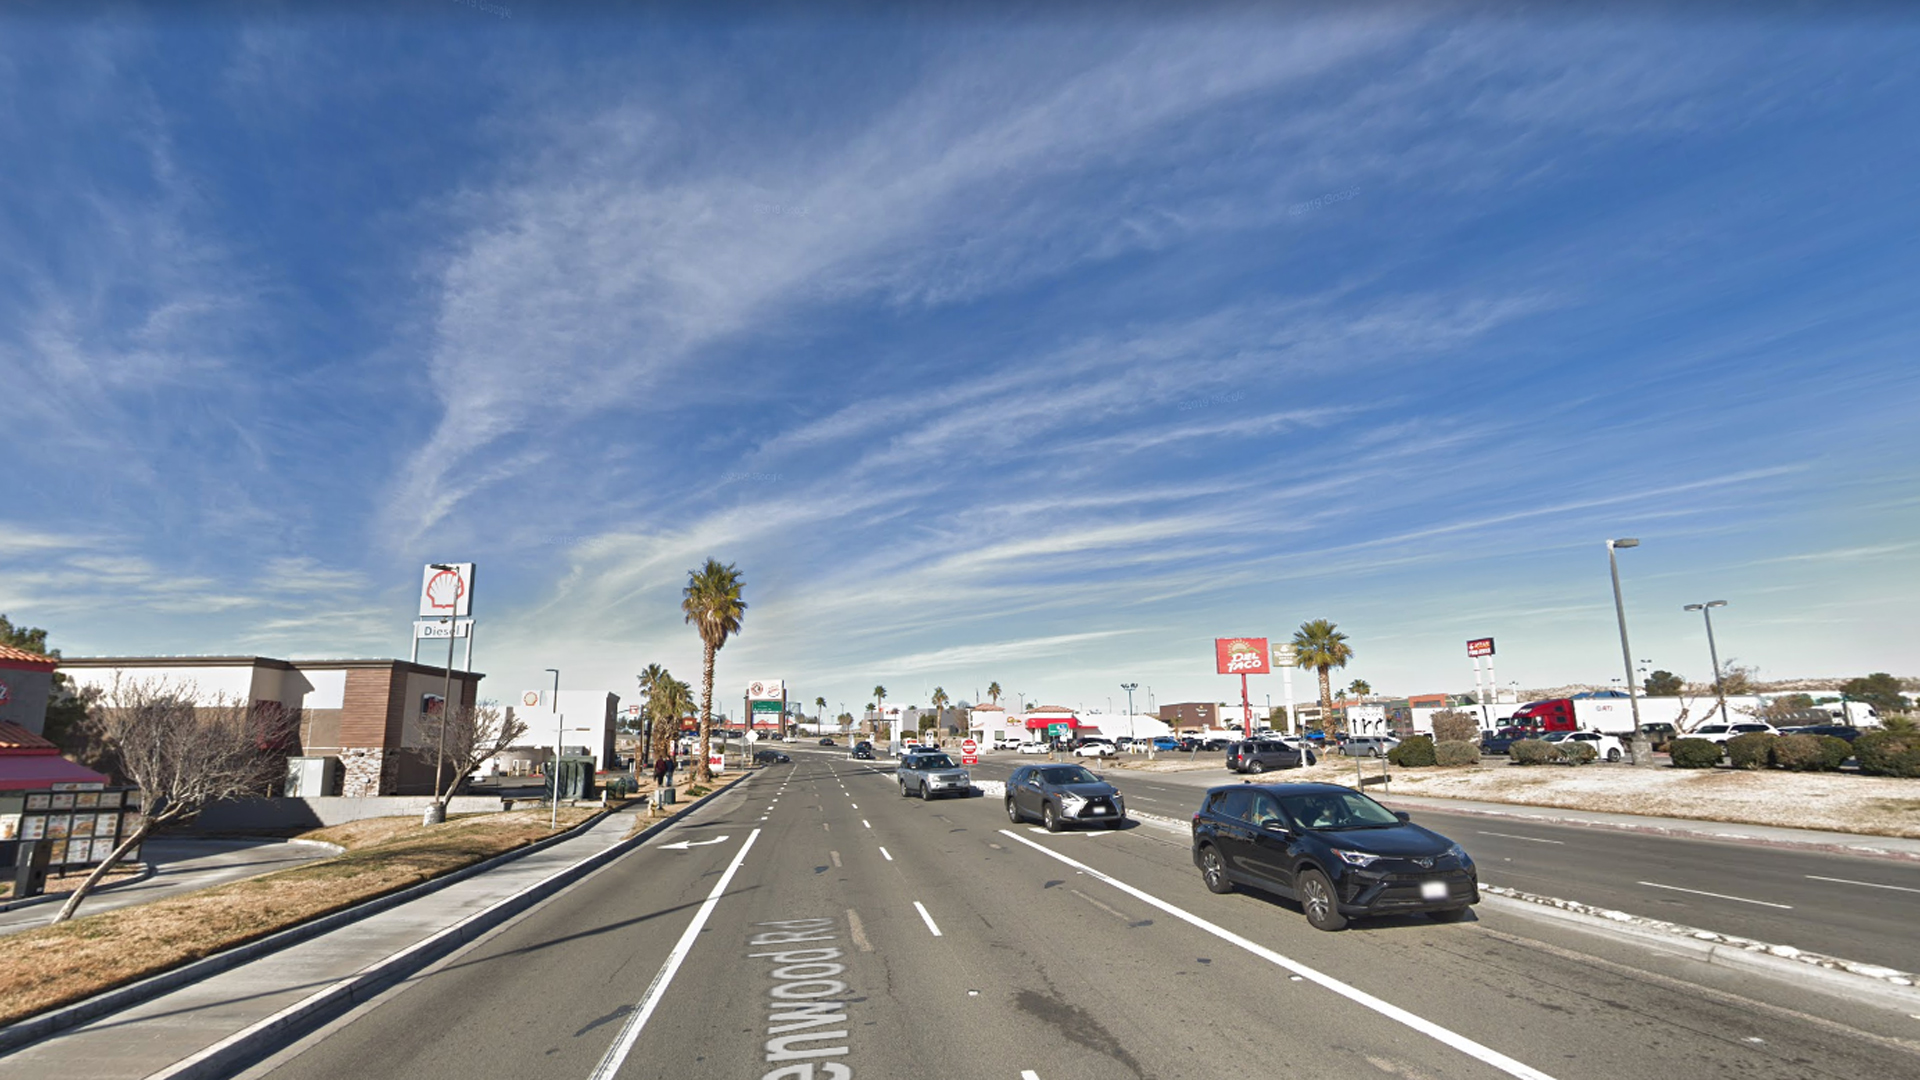 An area of Barstow where a traffic stop led to a shooting on May 4, 2019, is seen in this undated image from Google Maps.